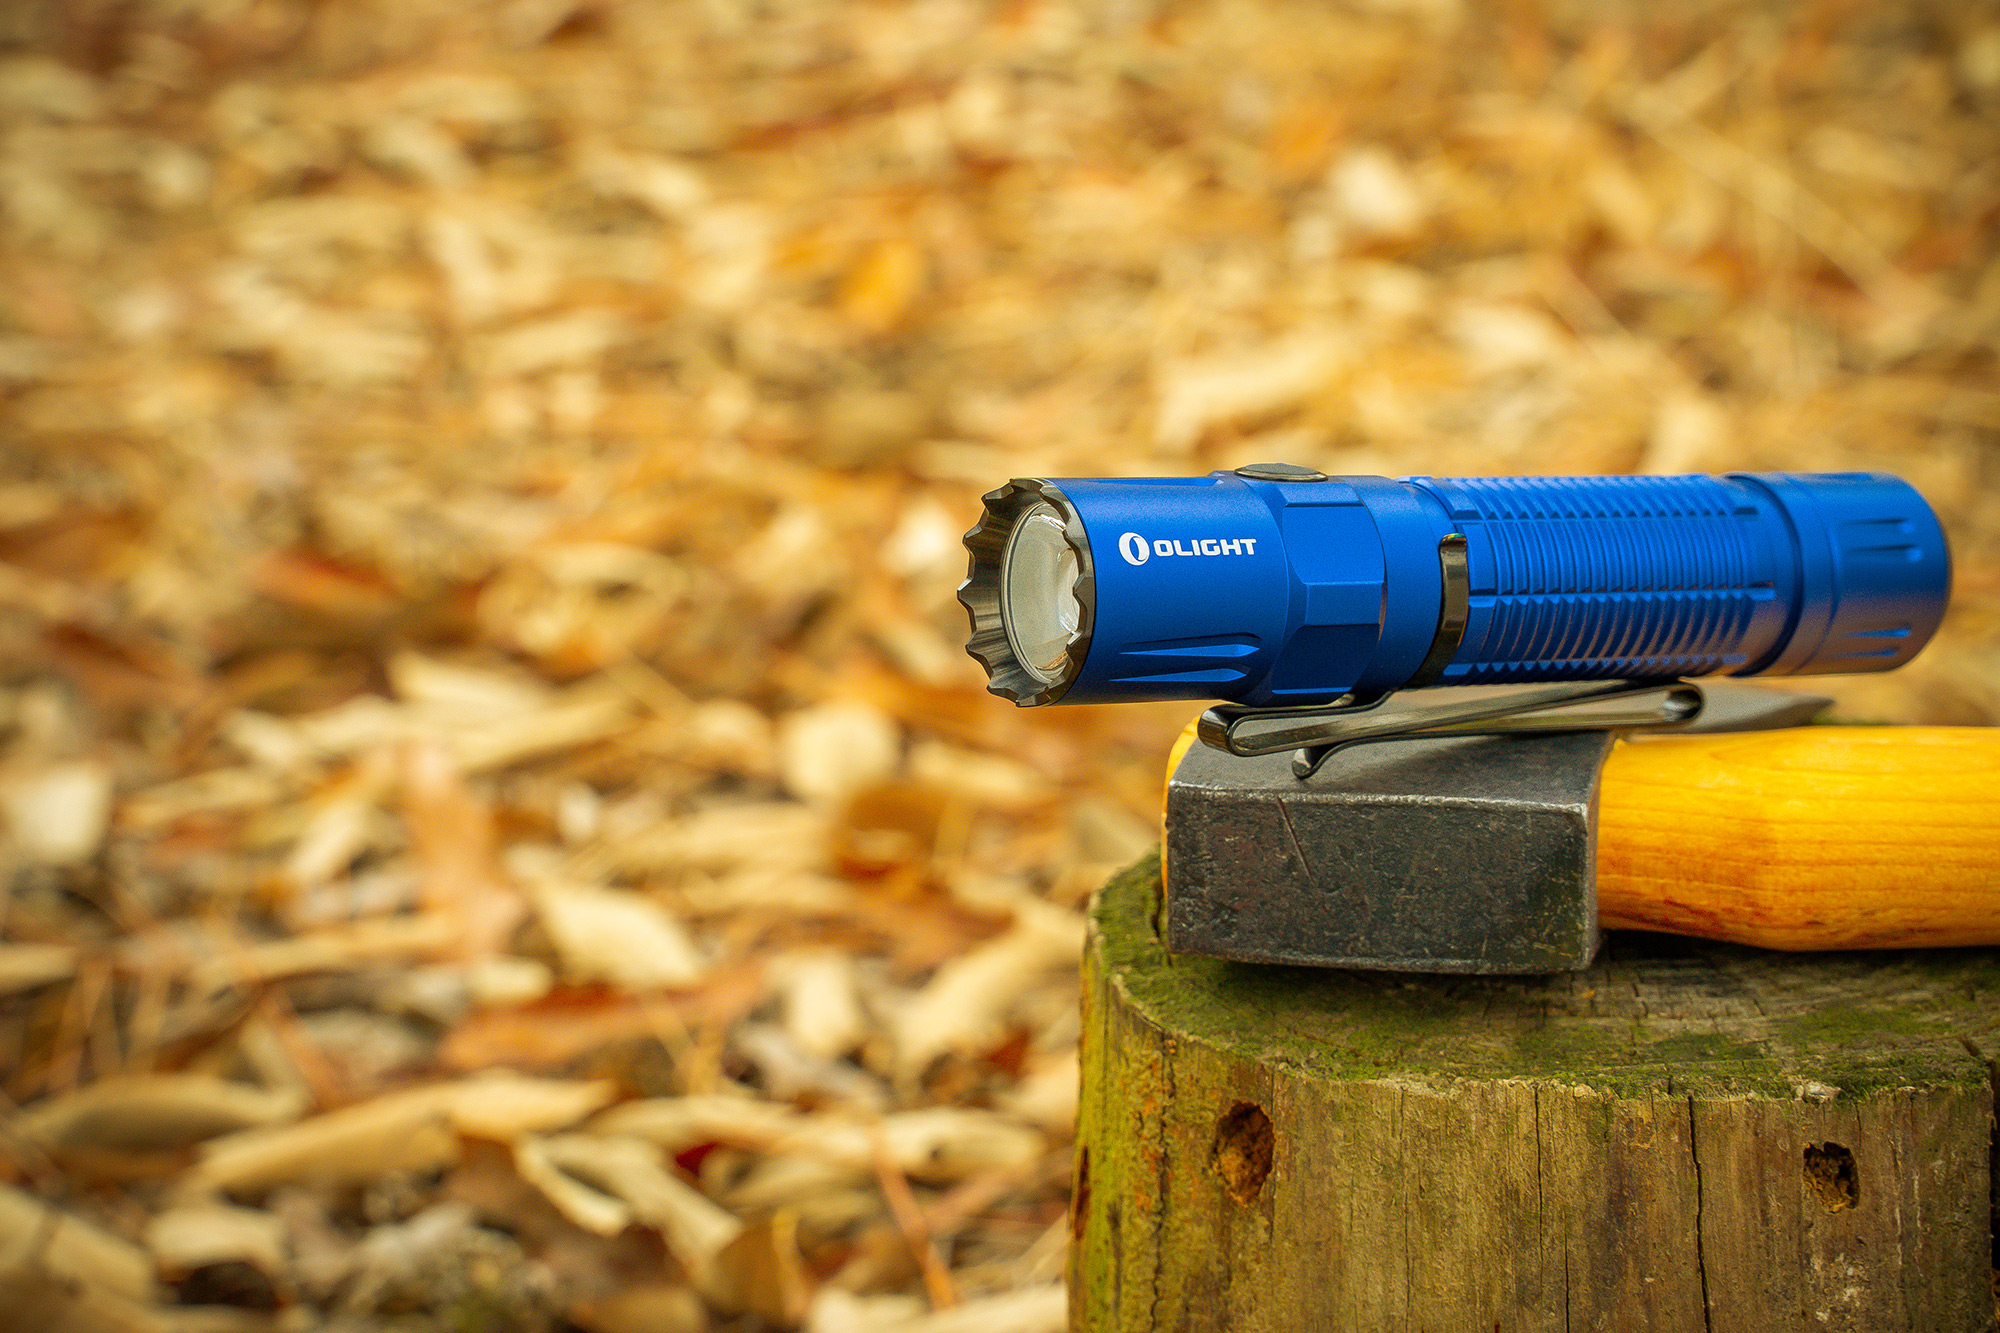 M2R Pro Warrior Takes The Tactical Gear Flashlight To New Depths